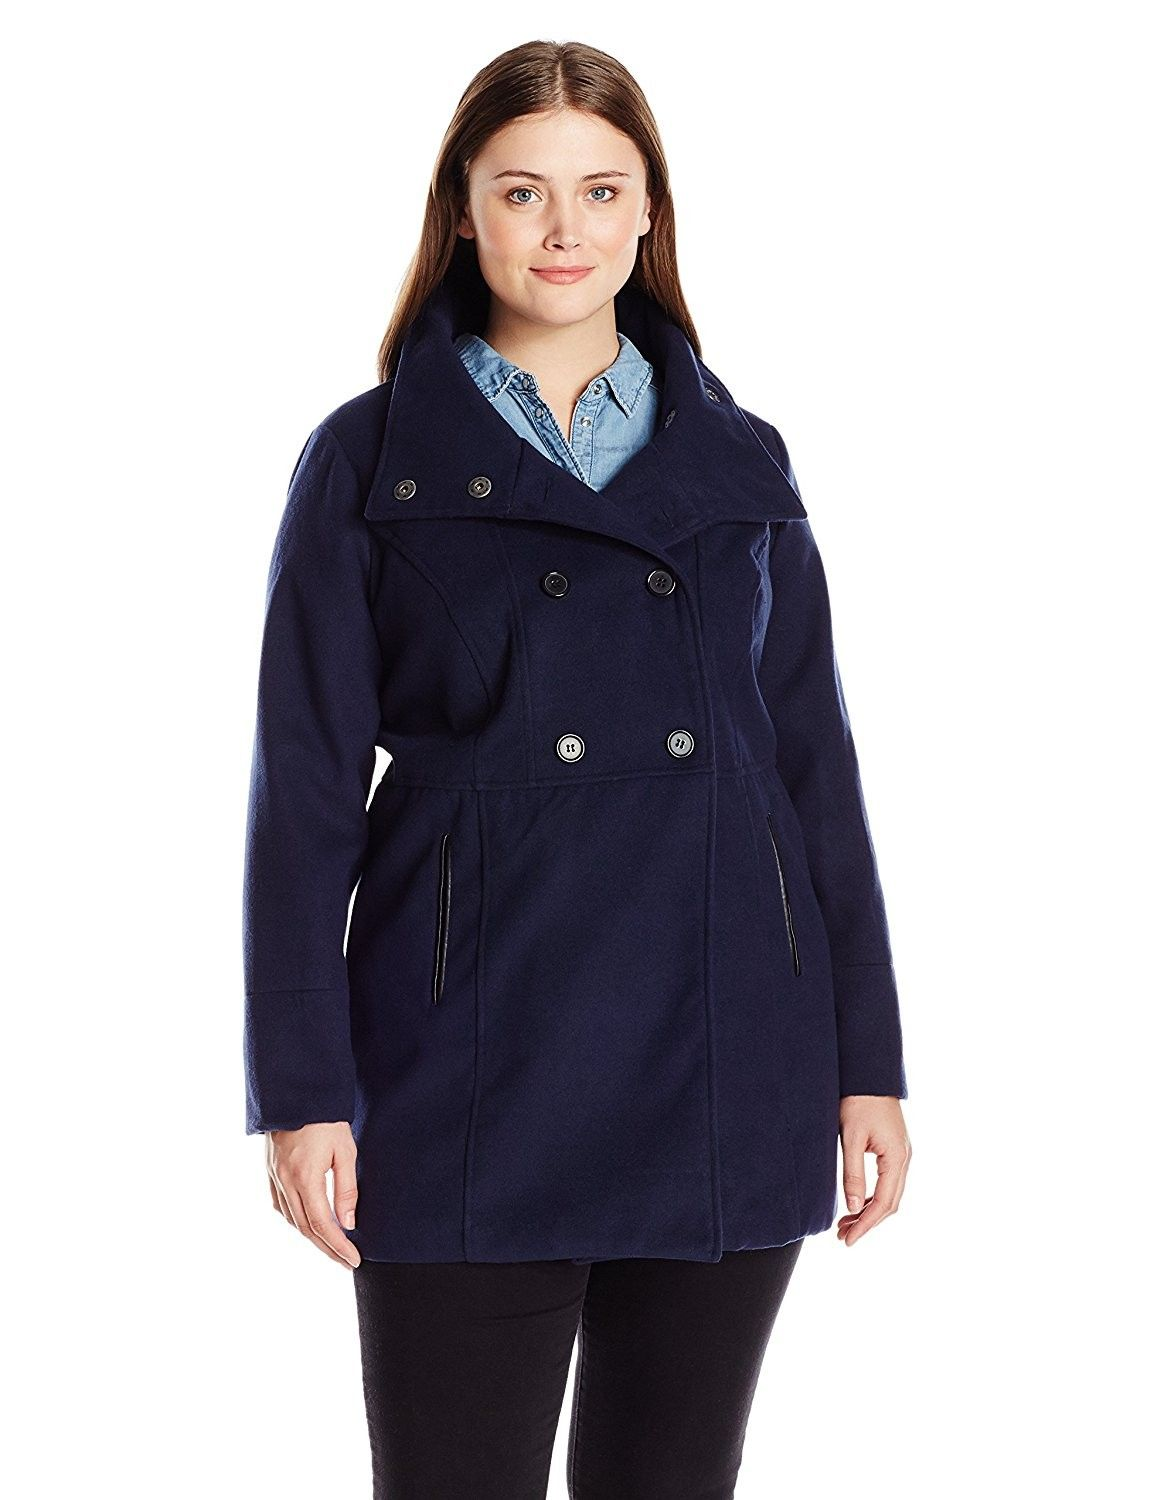 8bcbc938f95e4 Women s Plus Size Double Breasted Stand Collar Solid Wool Jacket - Navy -  CQ111SLAZ1P